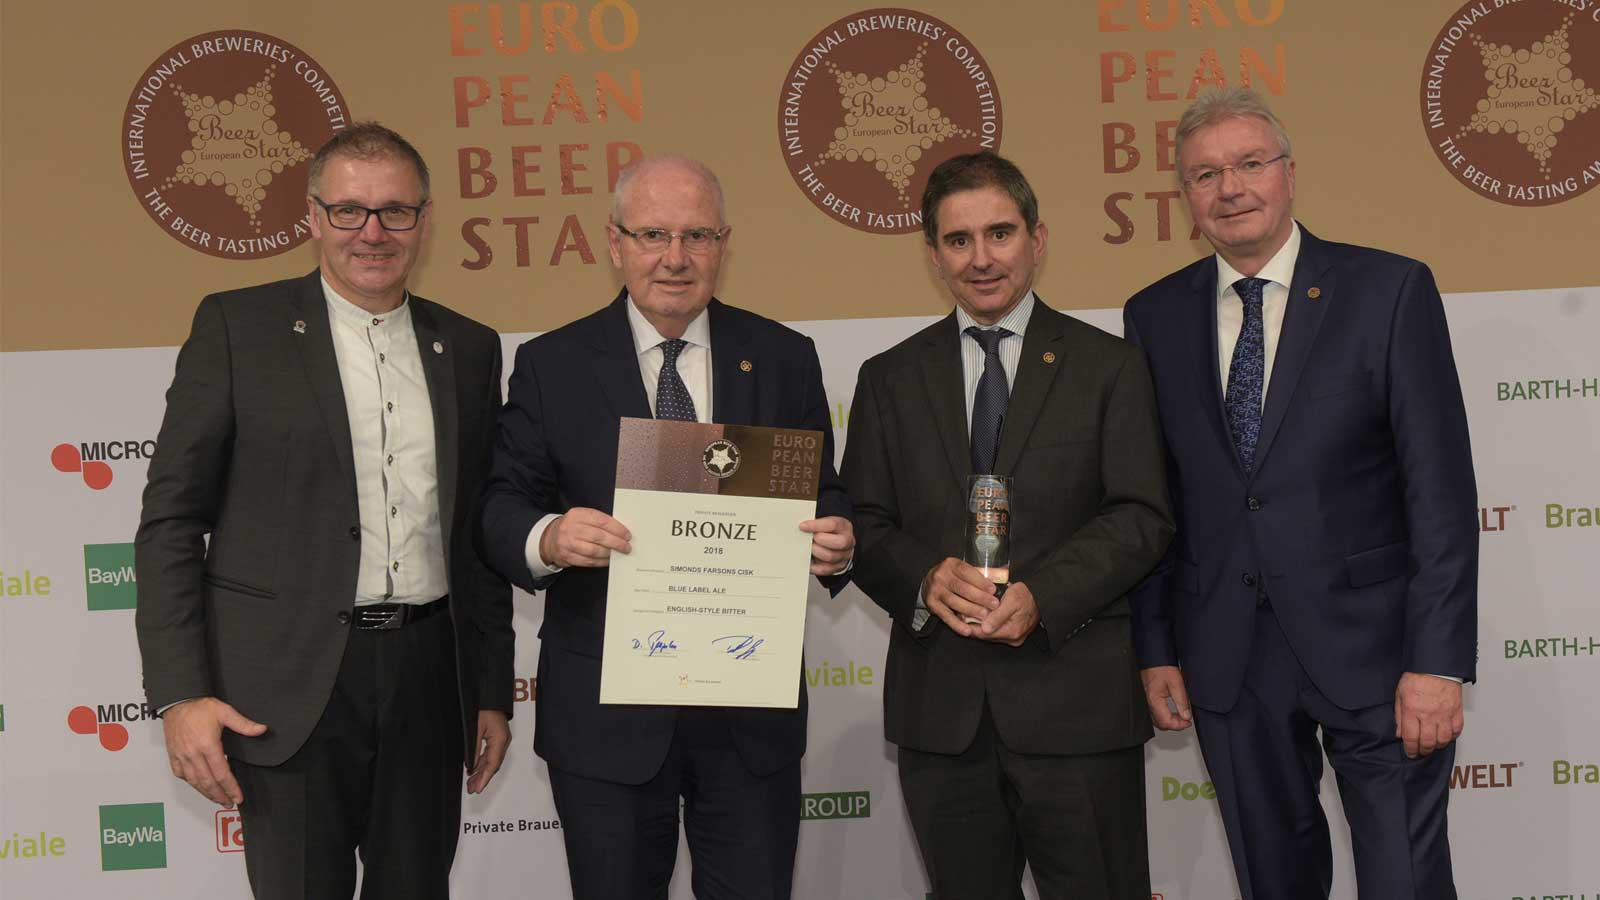 Farsons Blue Label wins at European Beer Star Awards 2018